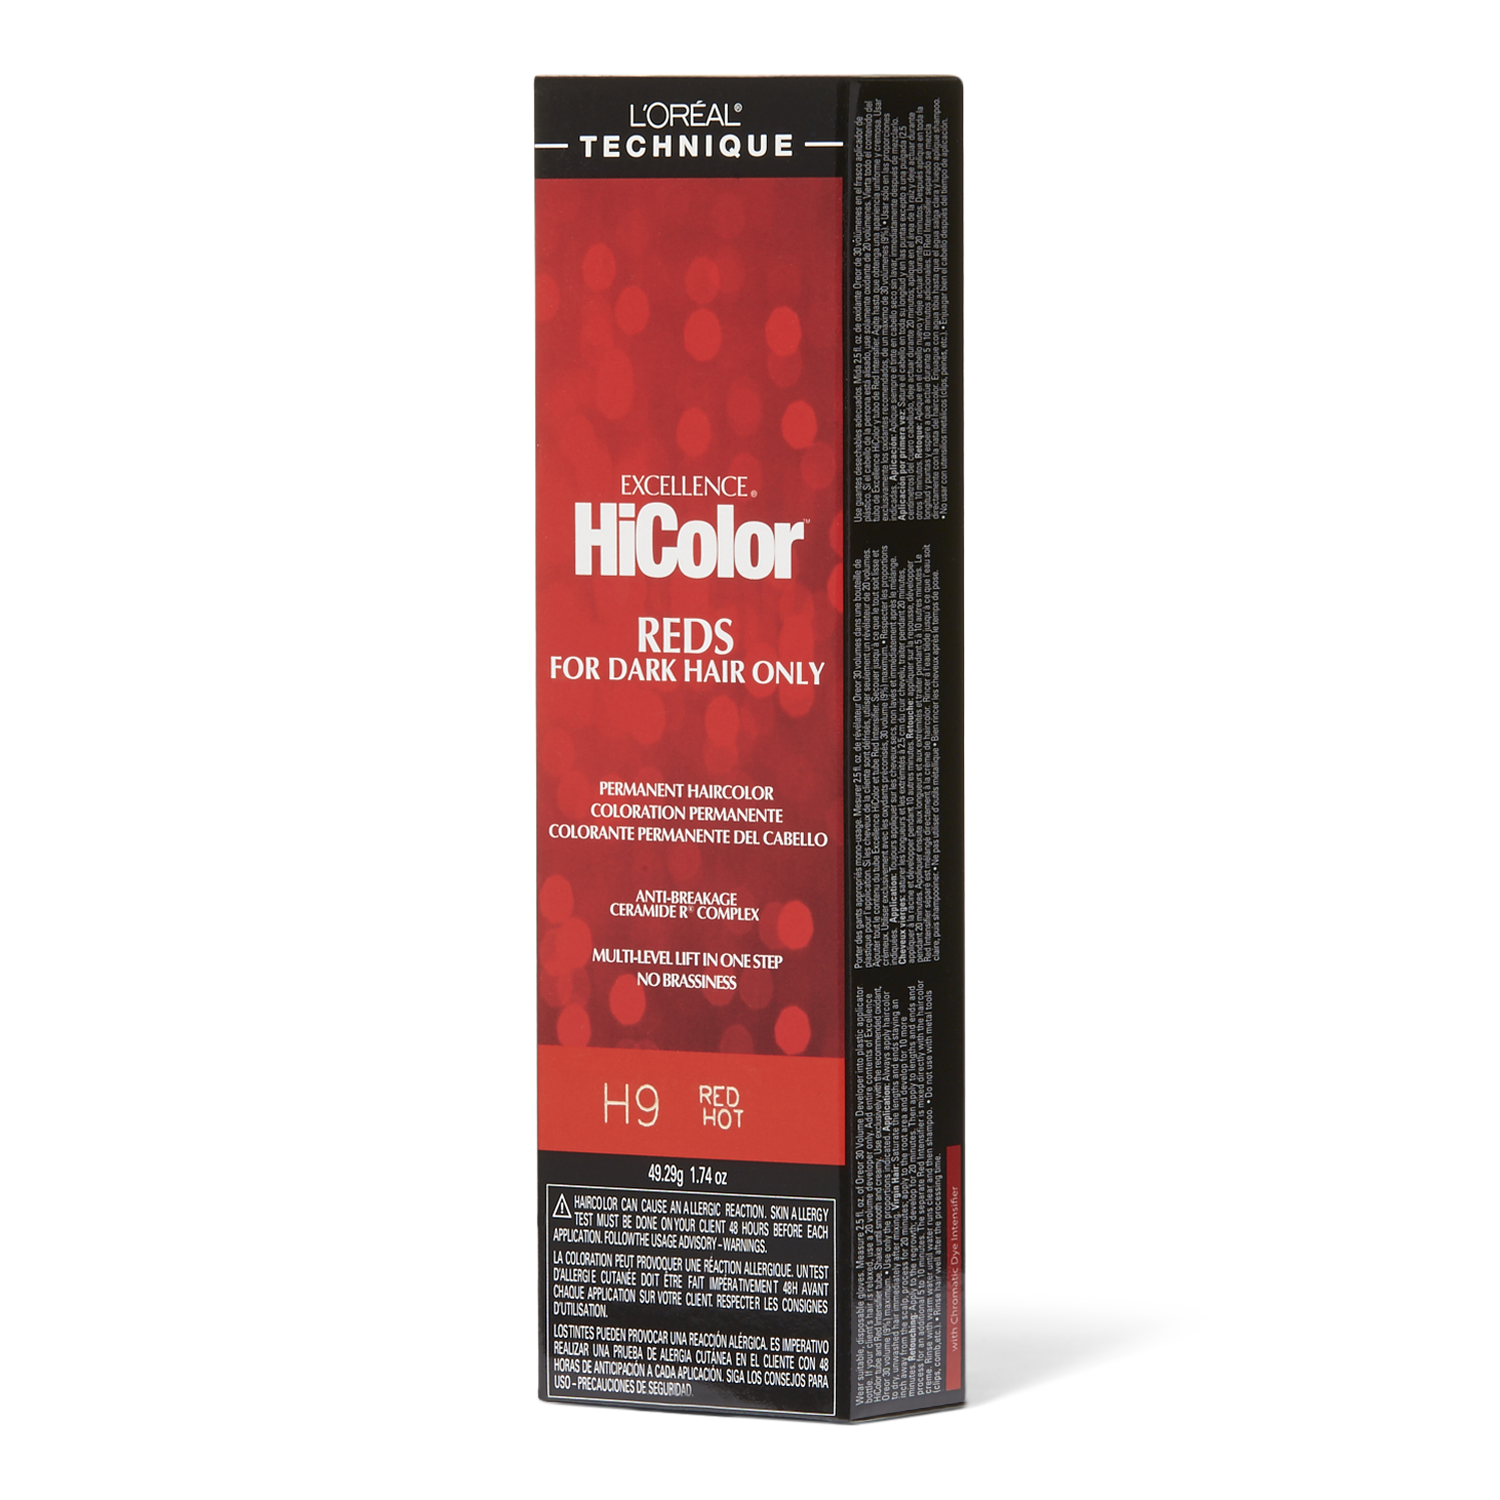 Loreal excellence hicolor permanent hair color geenschuldenfo Image collections